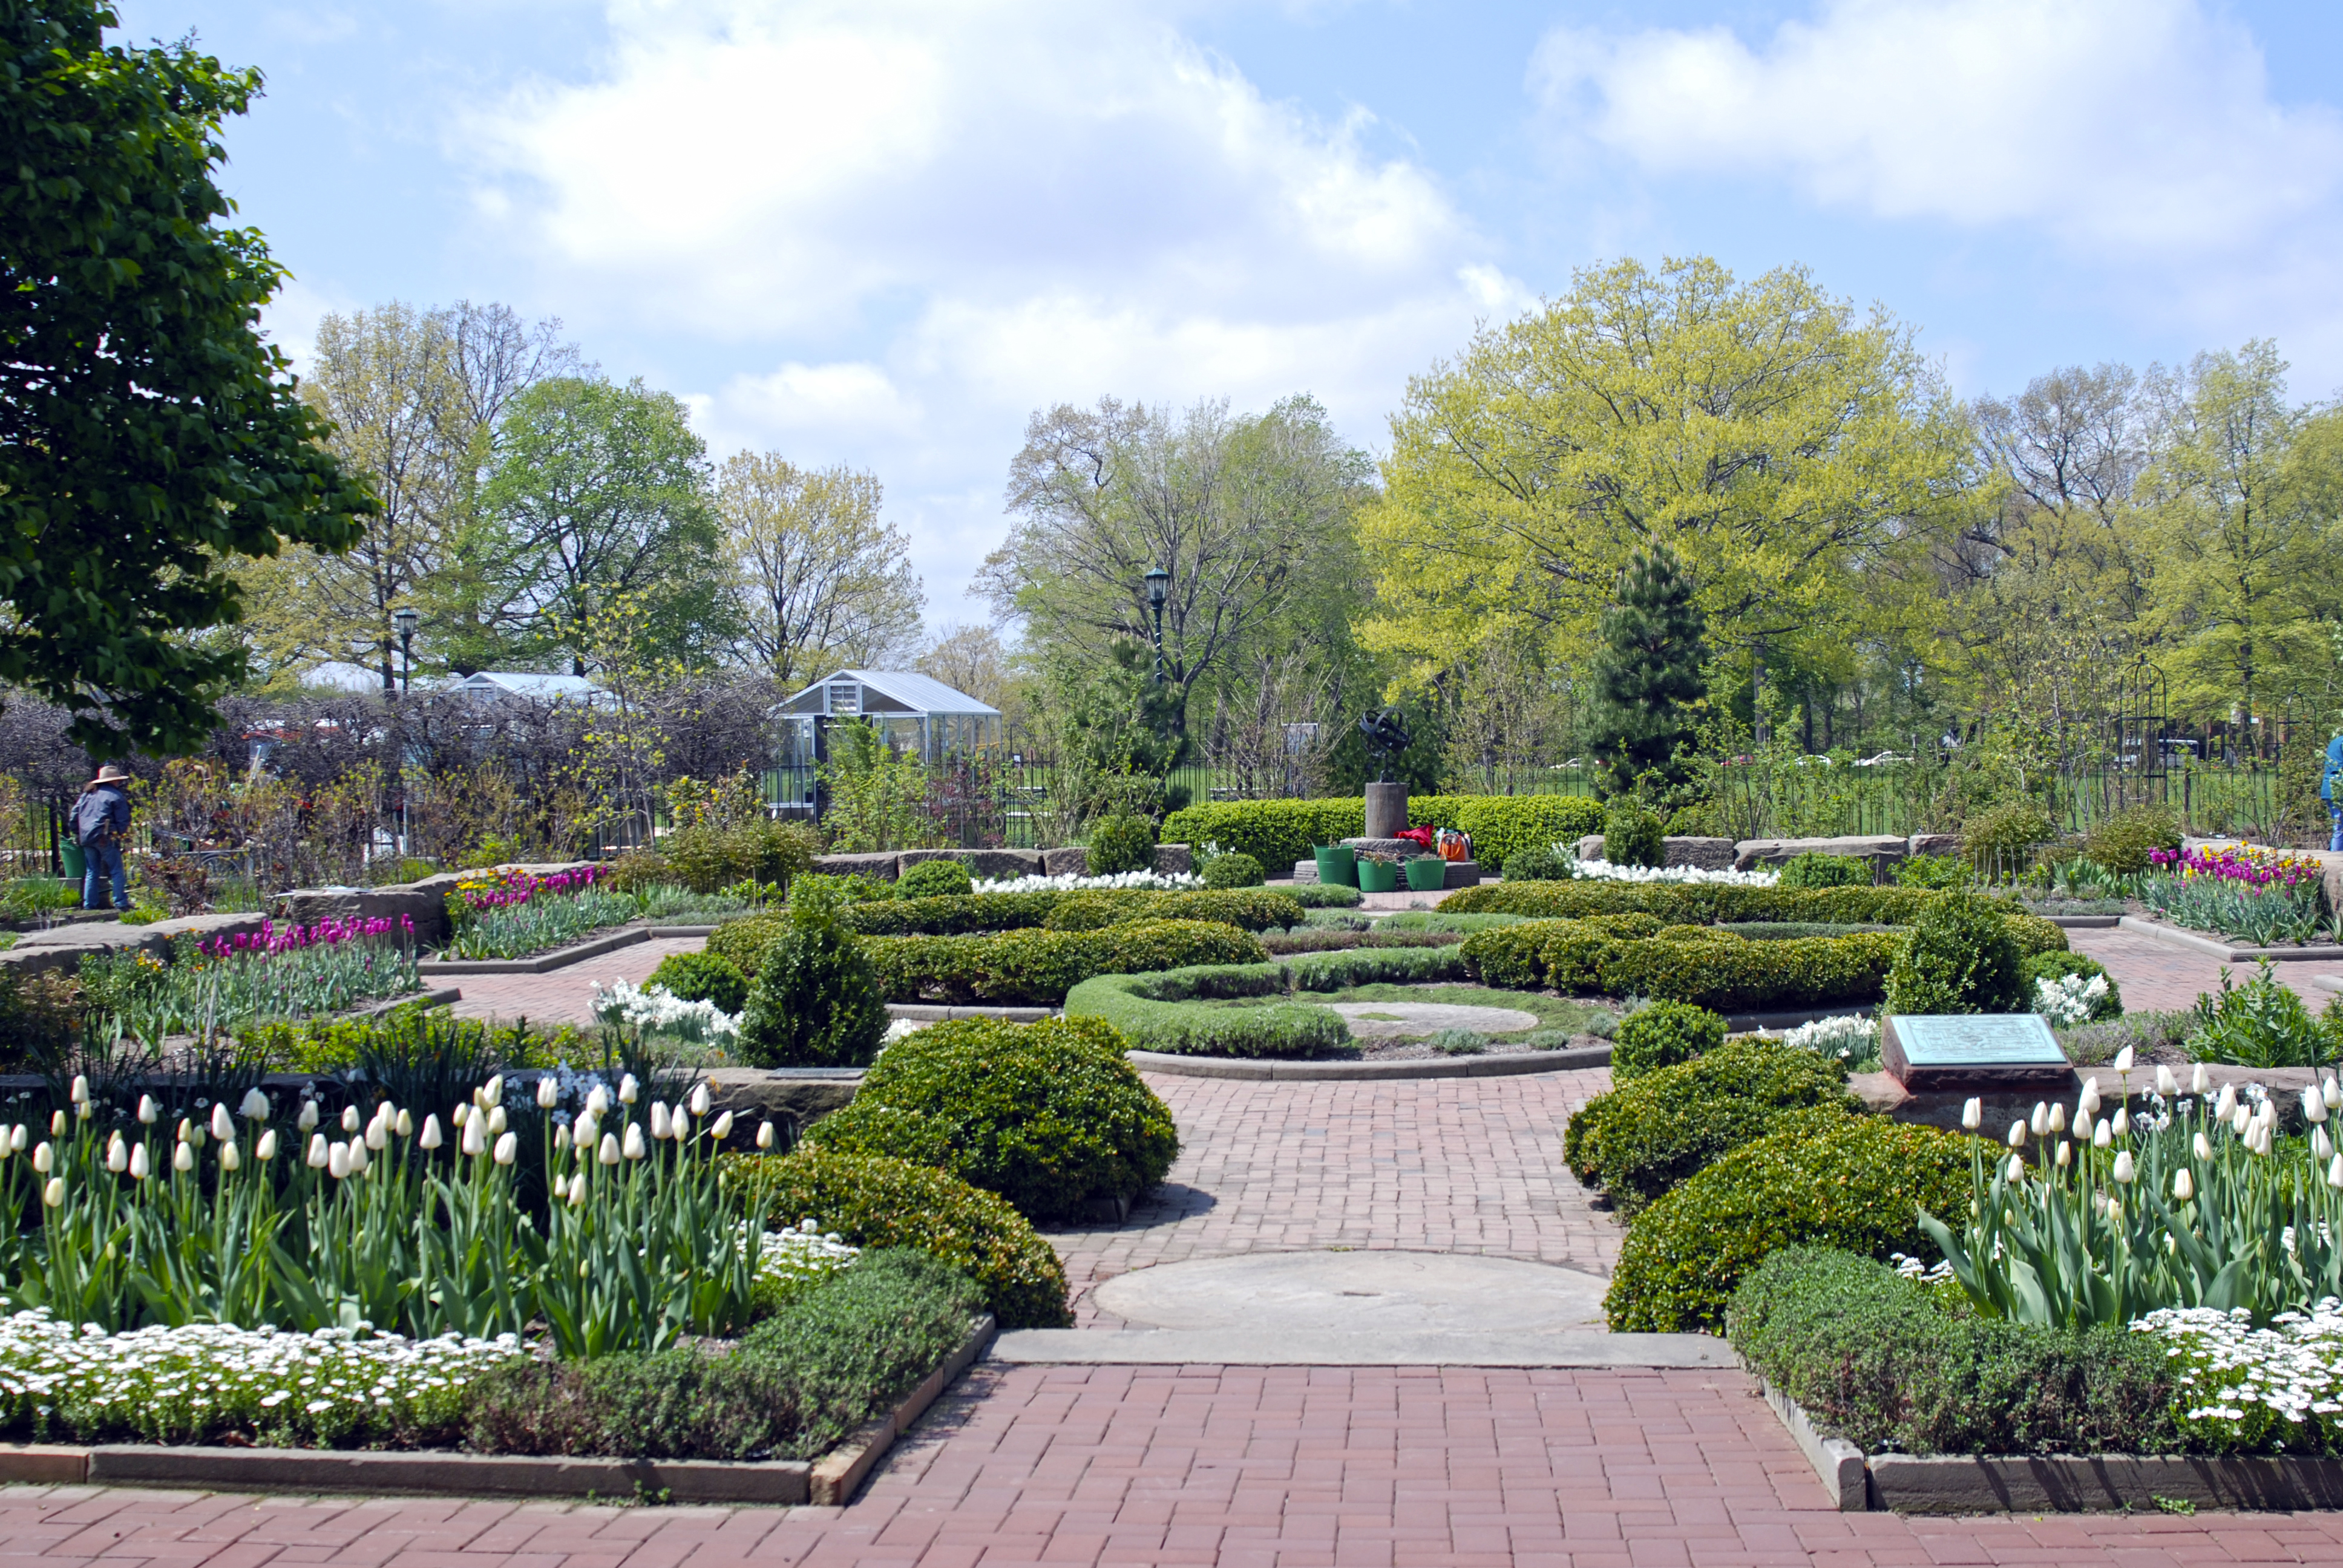 Knot and Fragrance Garden - Spring